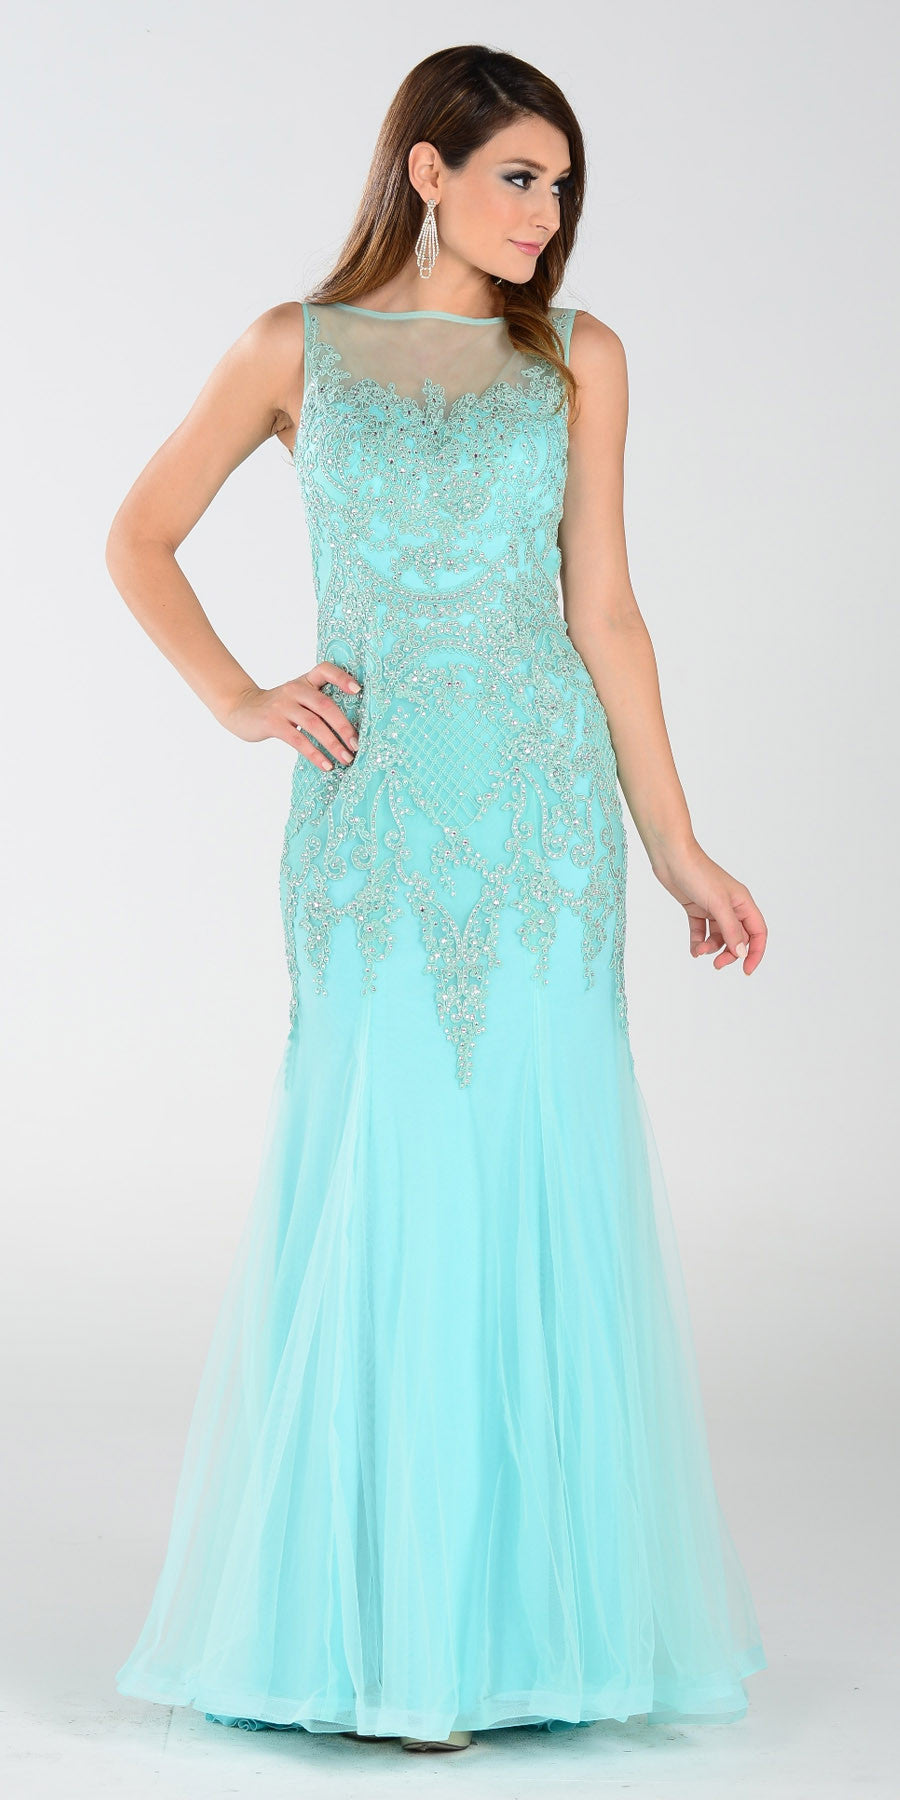 Poly USA 7338 Mermaid Silouette Prom Dress Periwinkle Sheer Neck ...